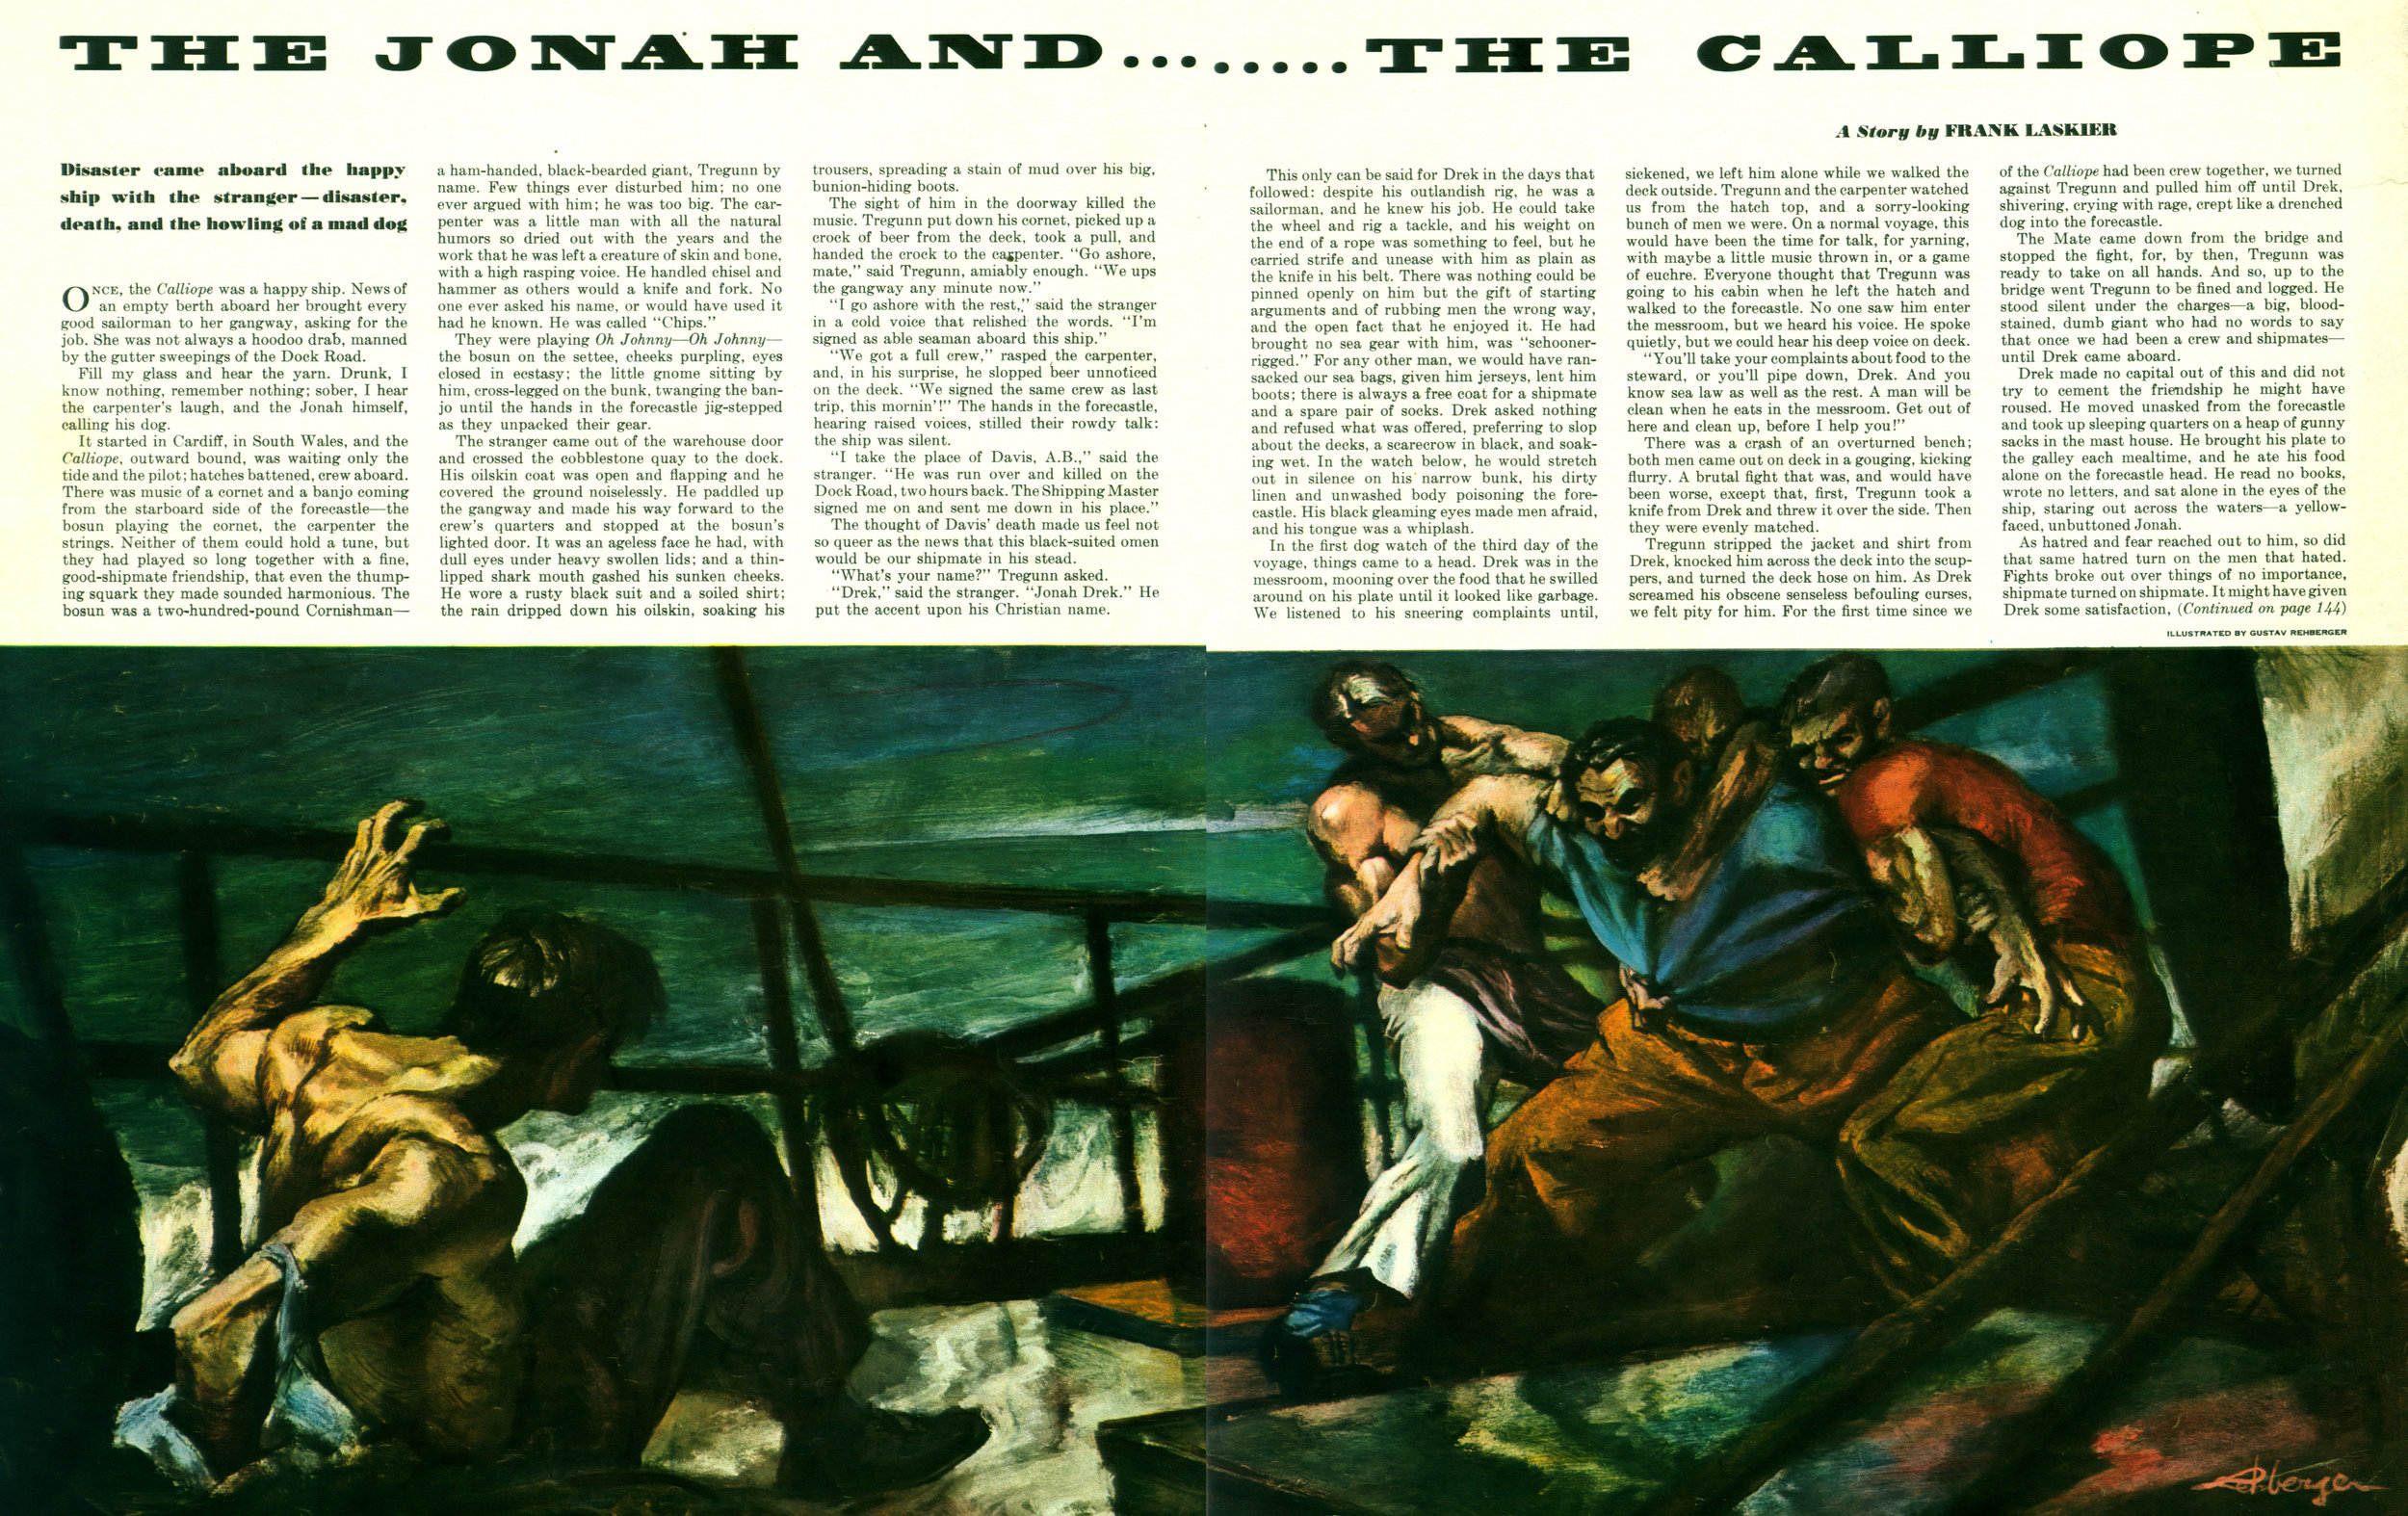 October 1949 - The Jonah and the Calliope